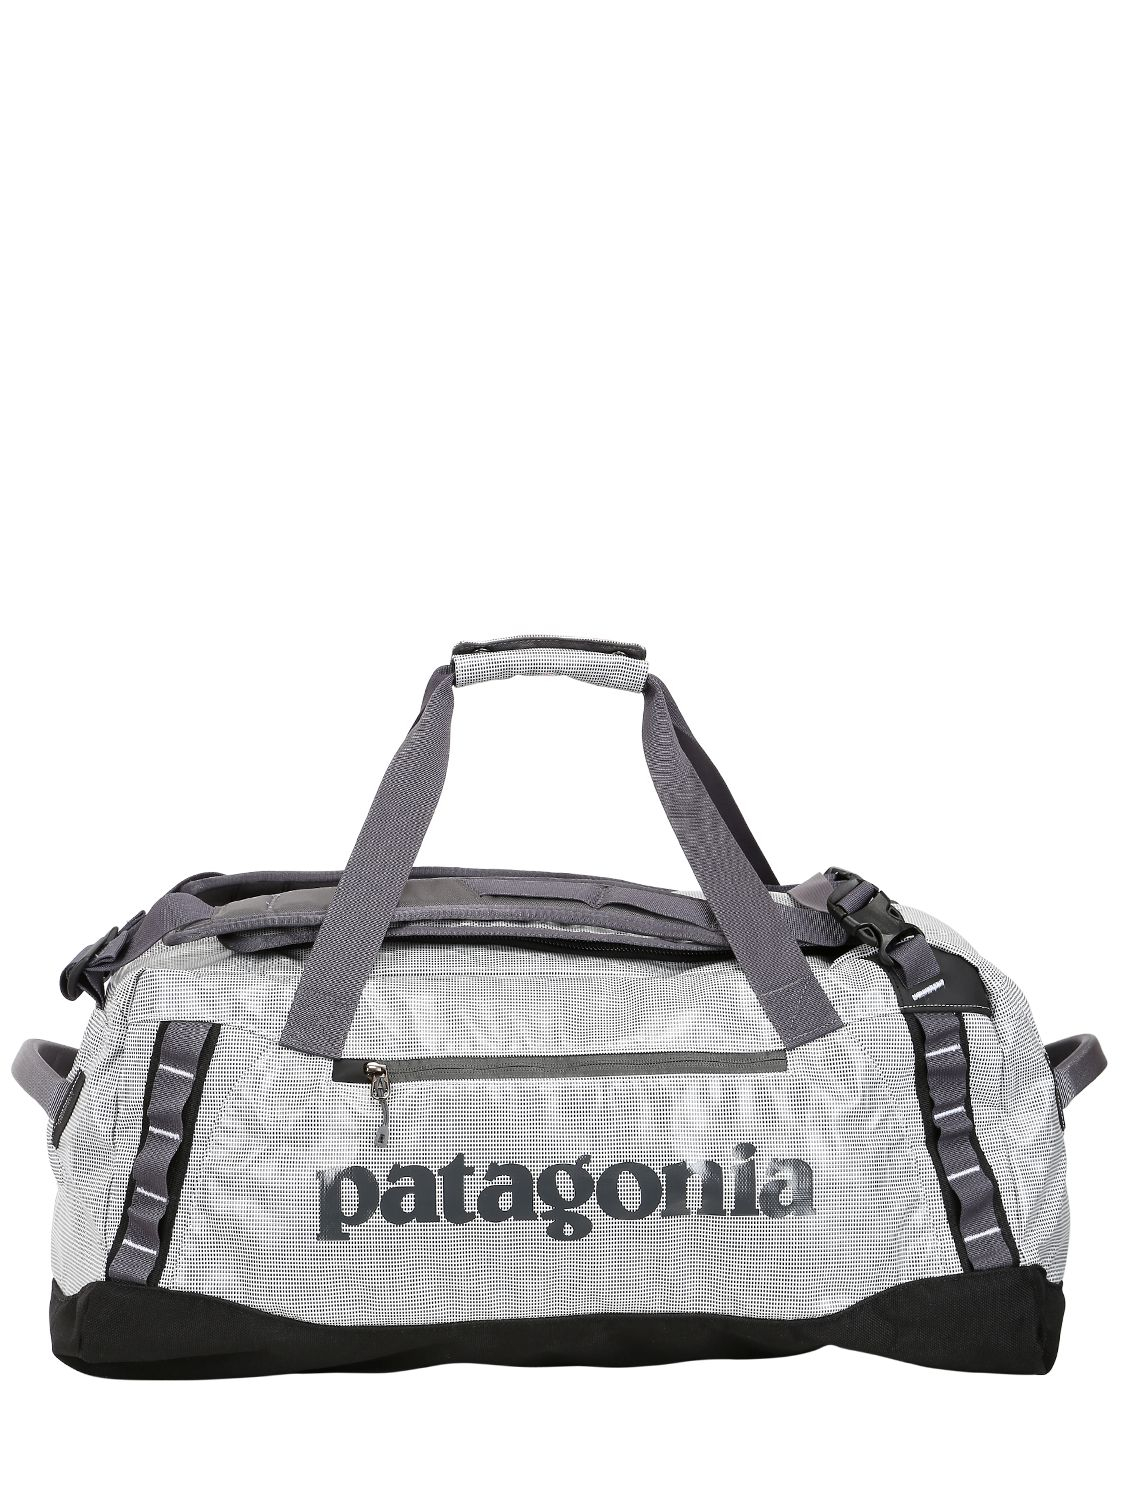 Patagonia Black Hole Duffle Bag In White For Men Lyst